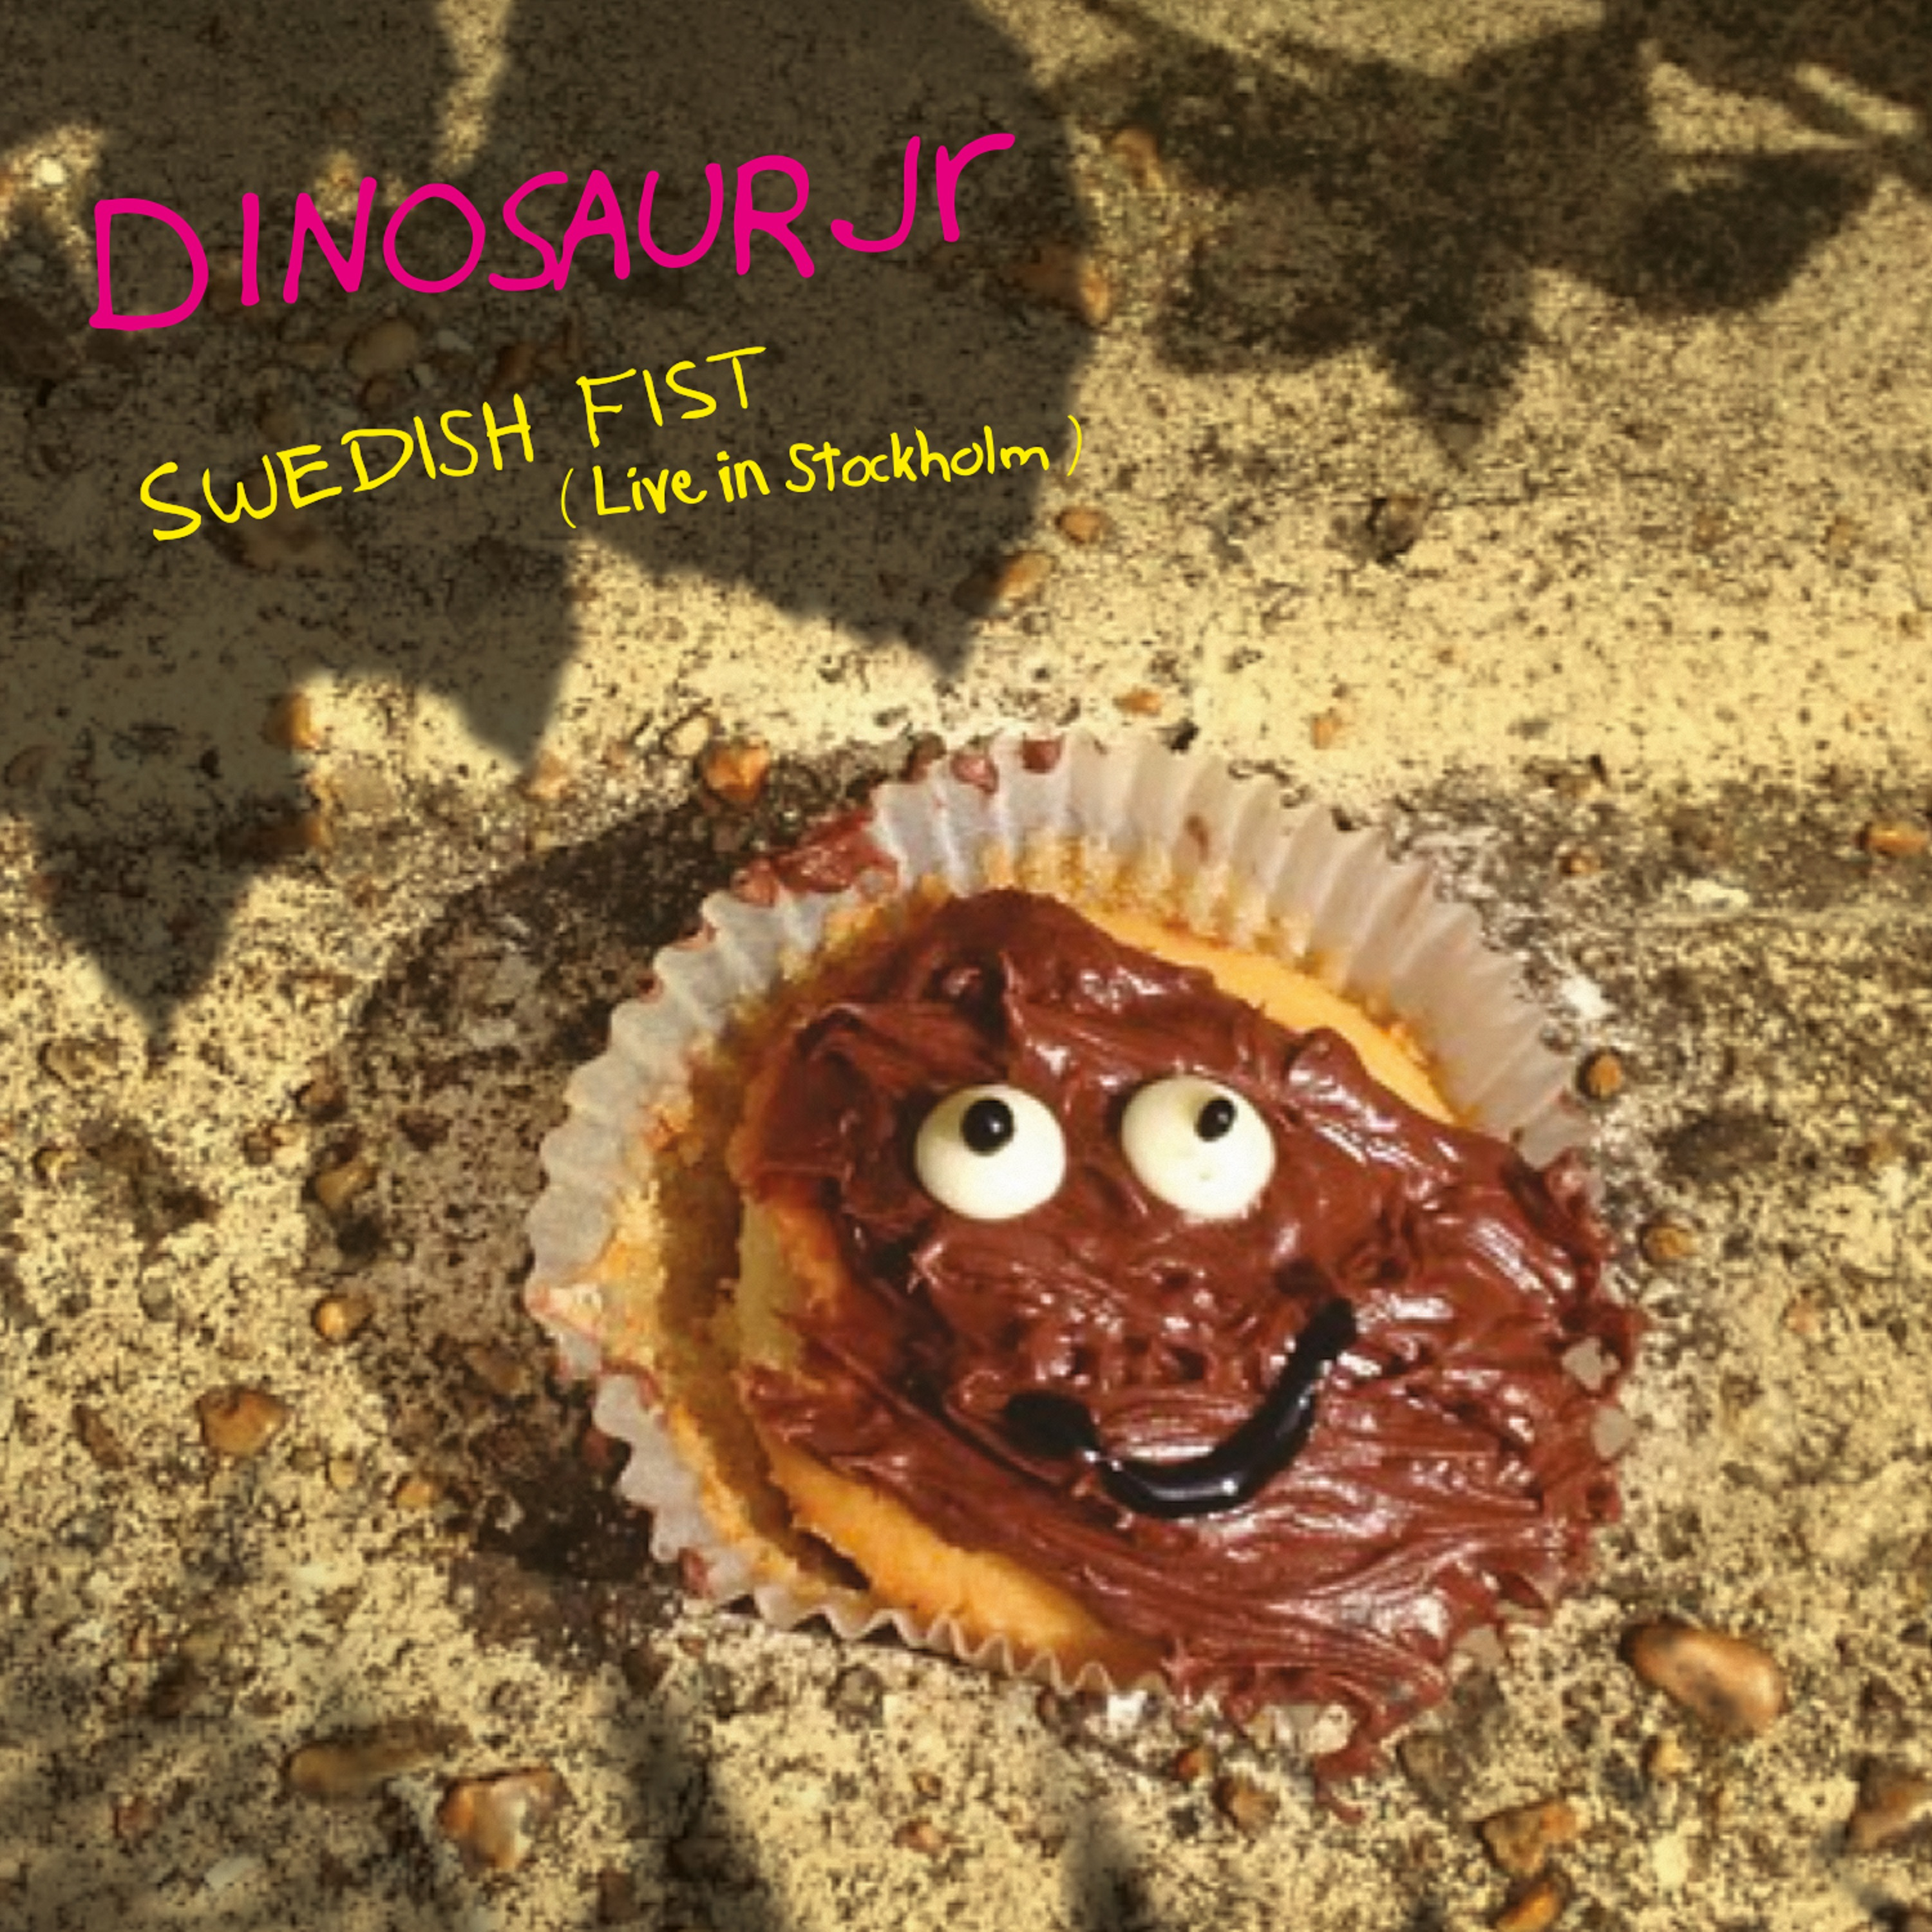 Dinosaur Jr. - Swedish Fist (Live In Stockholm) [RSD Drops Sep 2020]